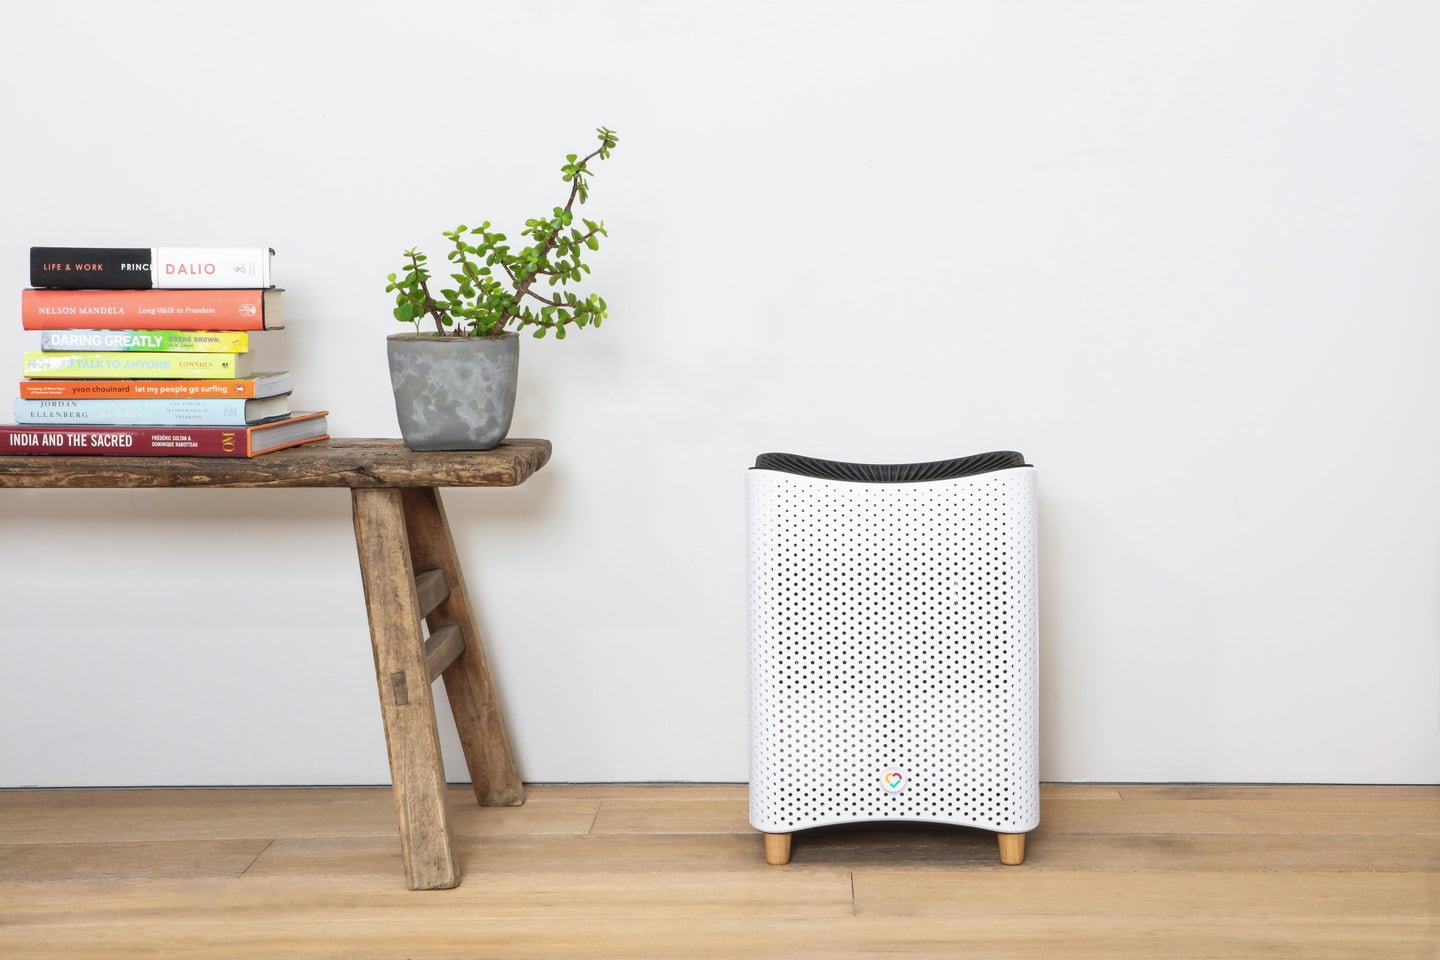 Mila air purifier, one of the best air purifiers, on a wood floor next to a wooden bench with a plant and books on it